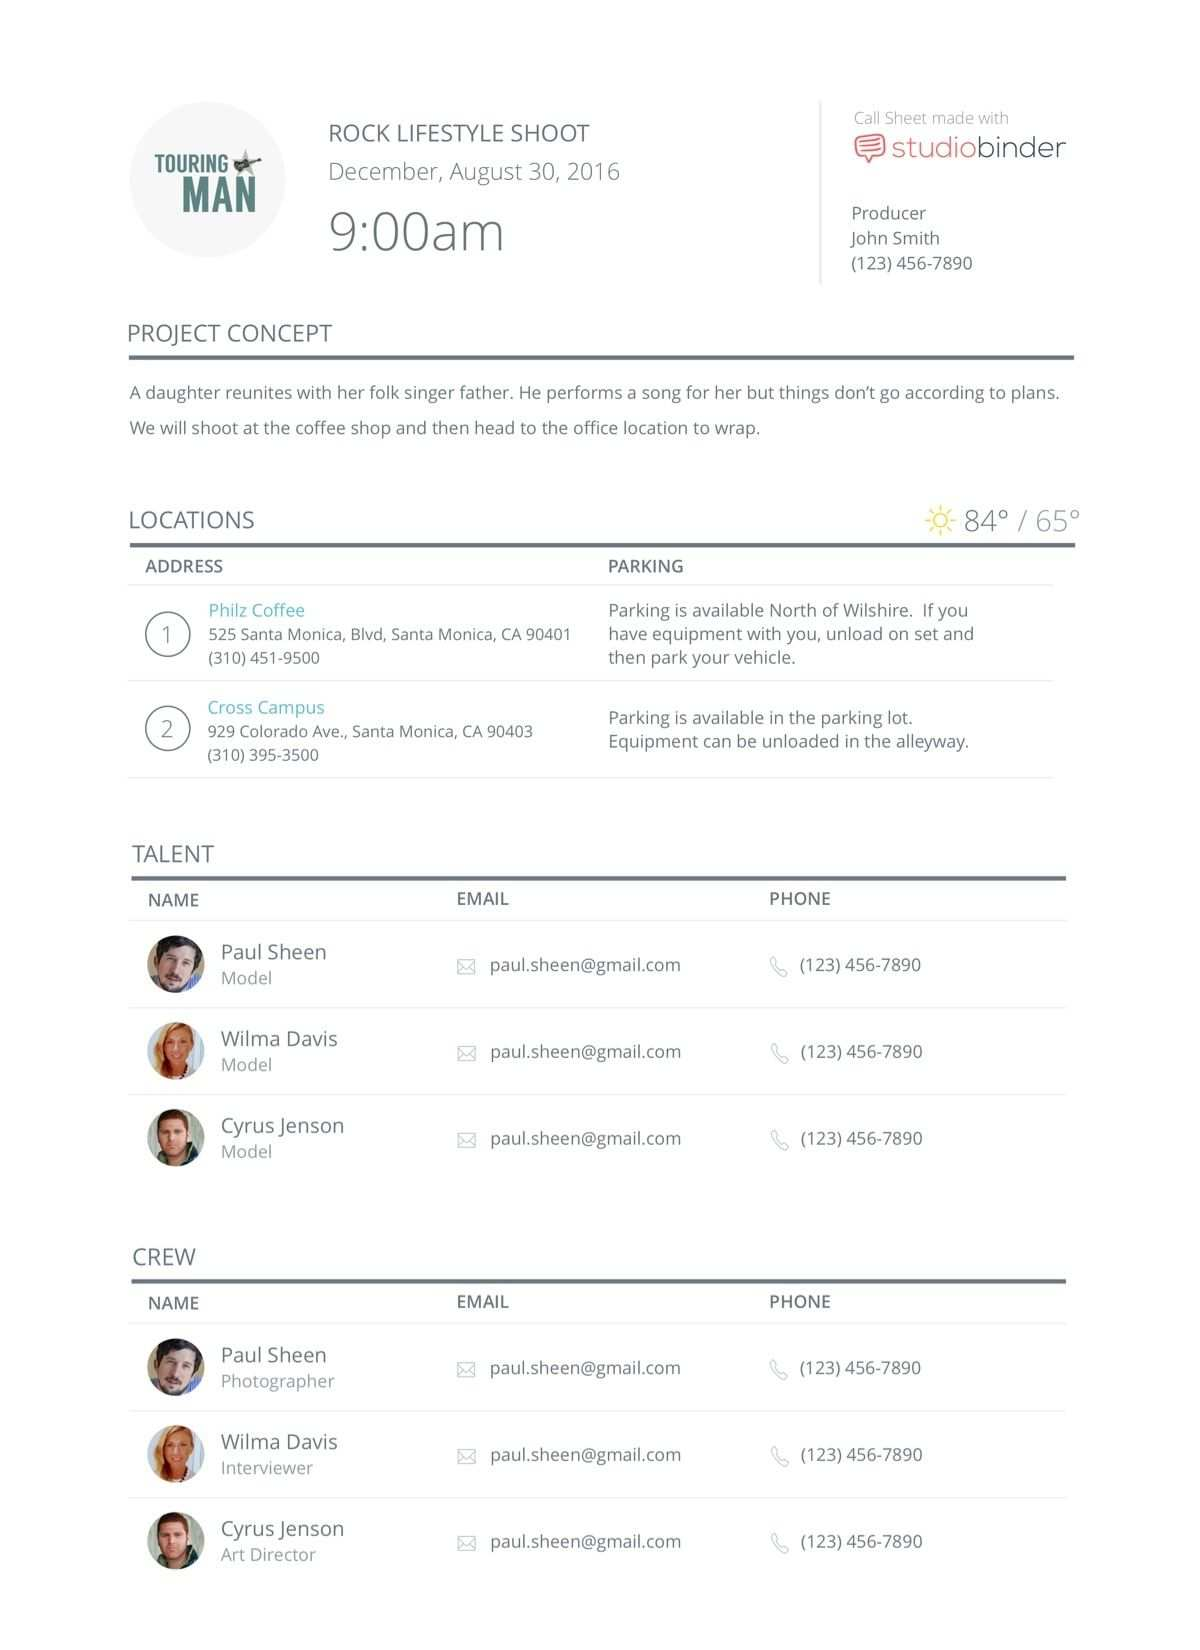 Online Call Sheet Templates For Film Tv Production Label